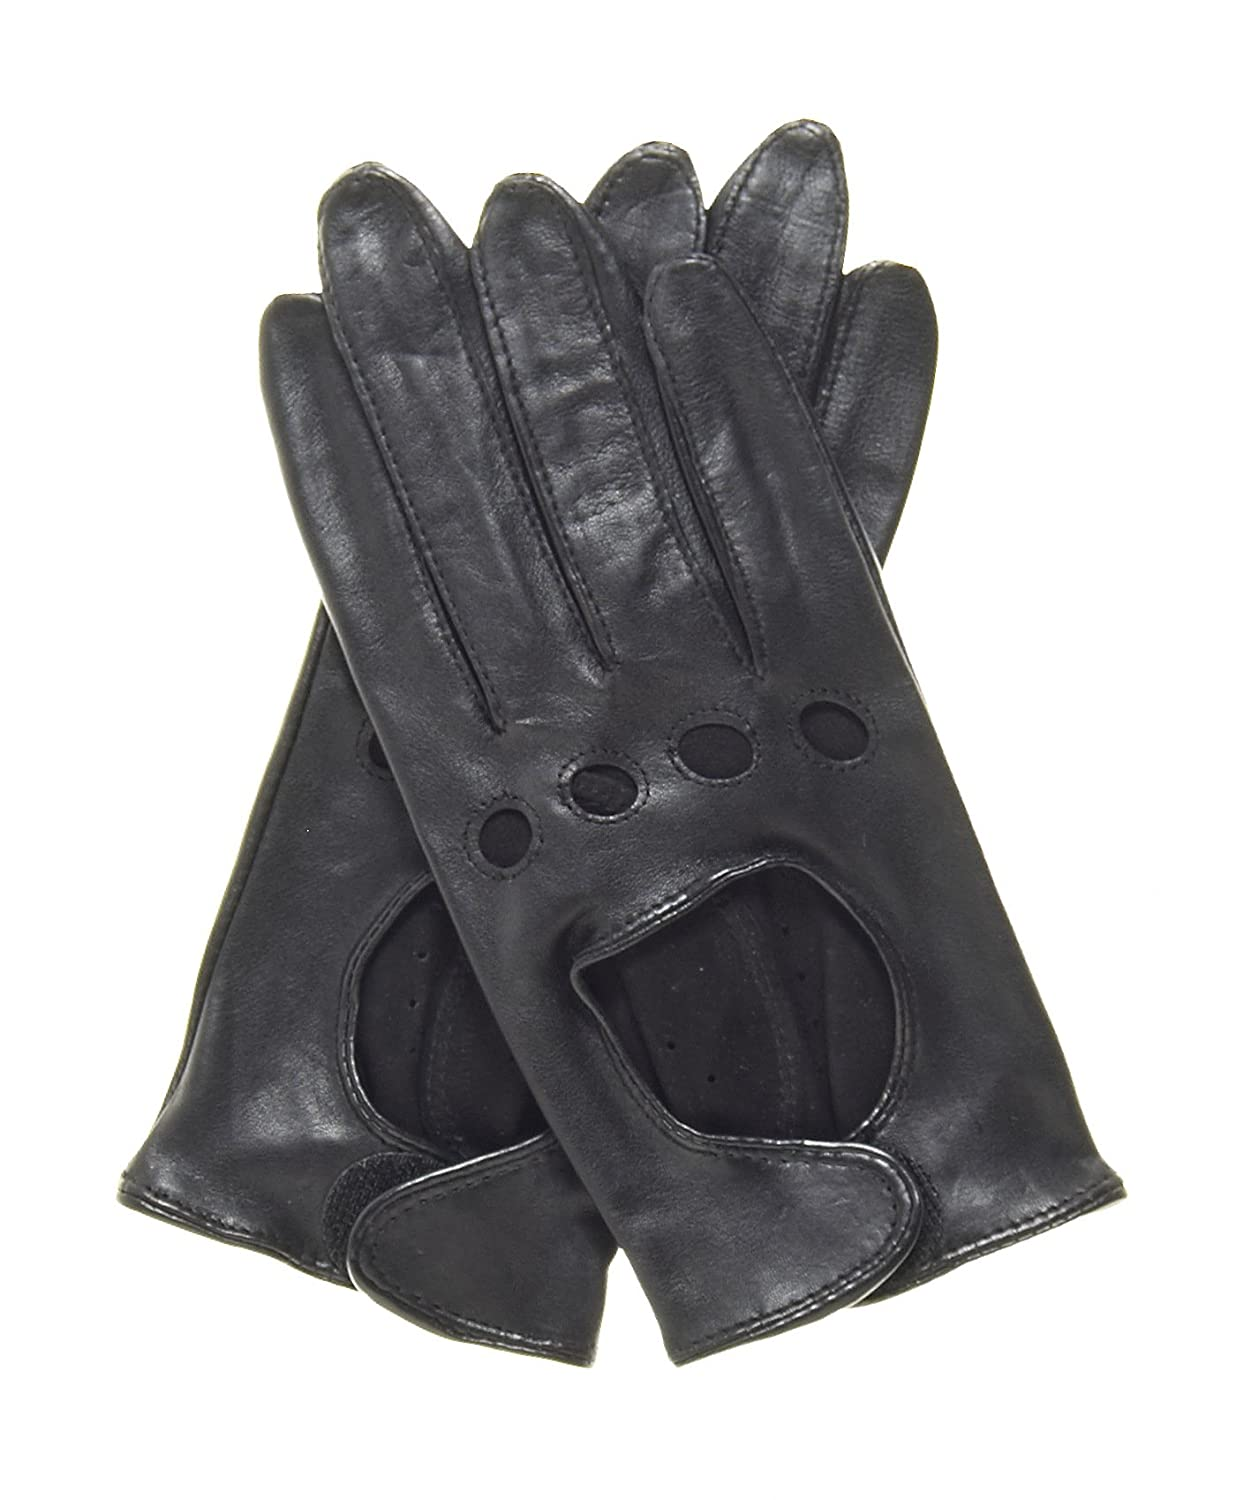 Ladies unlined leather driving gloves - Pratt And Hart Women S Womens Leather Driving Gloves Size S Color Black At Amazon Women S Clothing Store Cold Weather Gloves